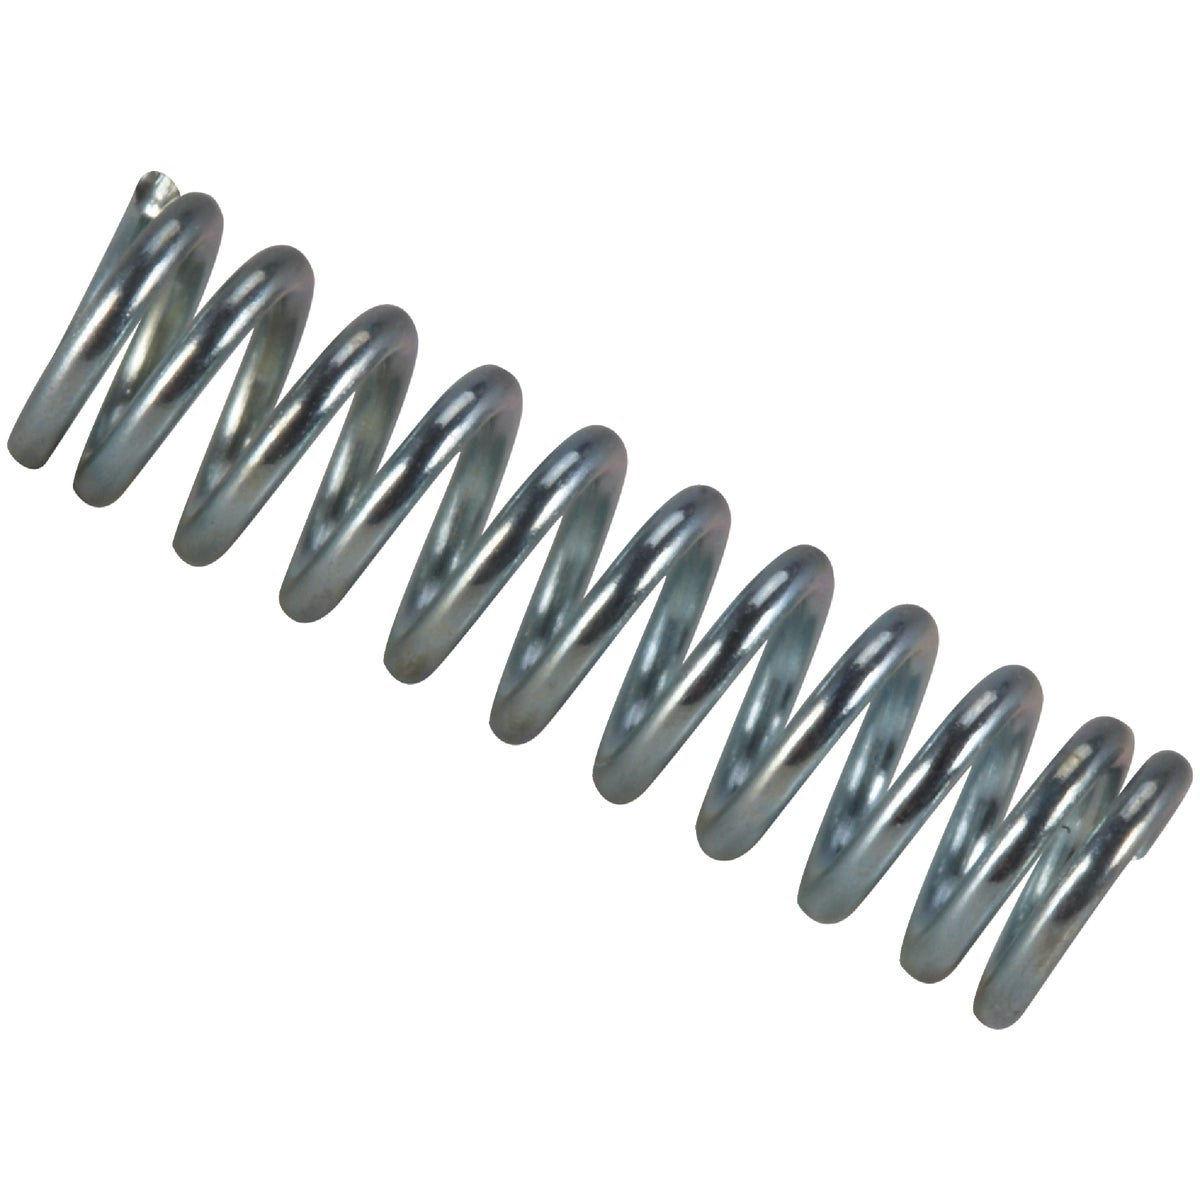 COMPRESSION SPRING - C-676 by Century Spring Corp